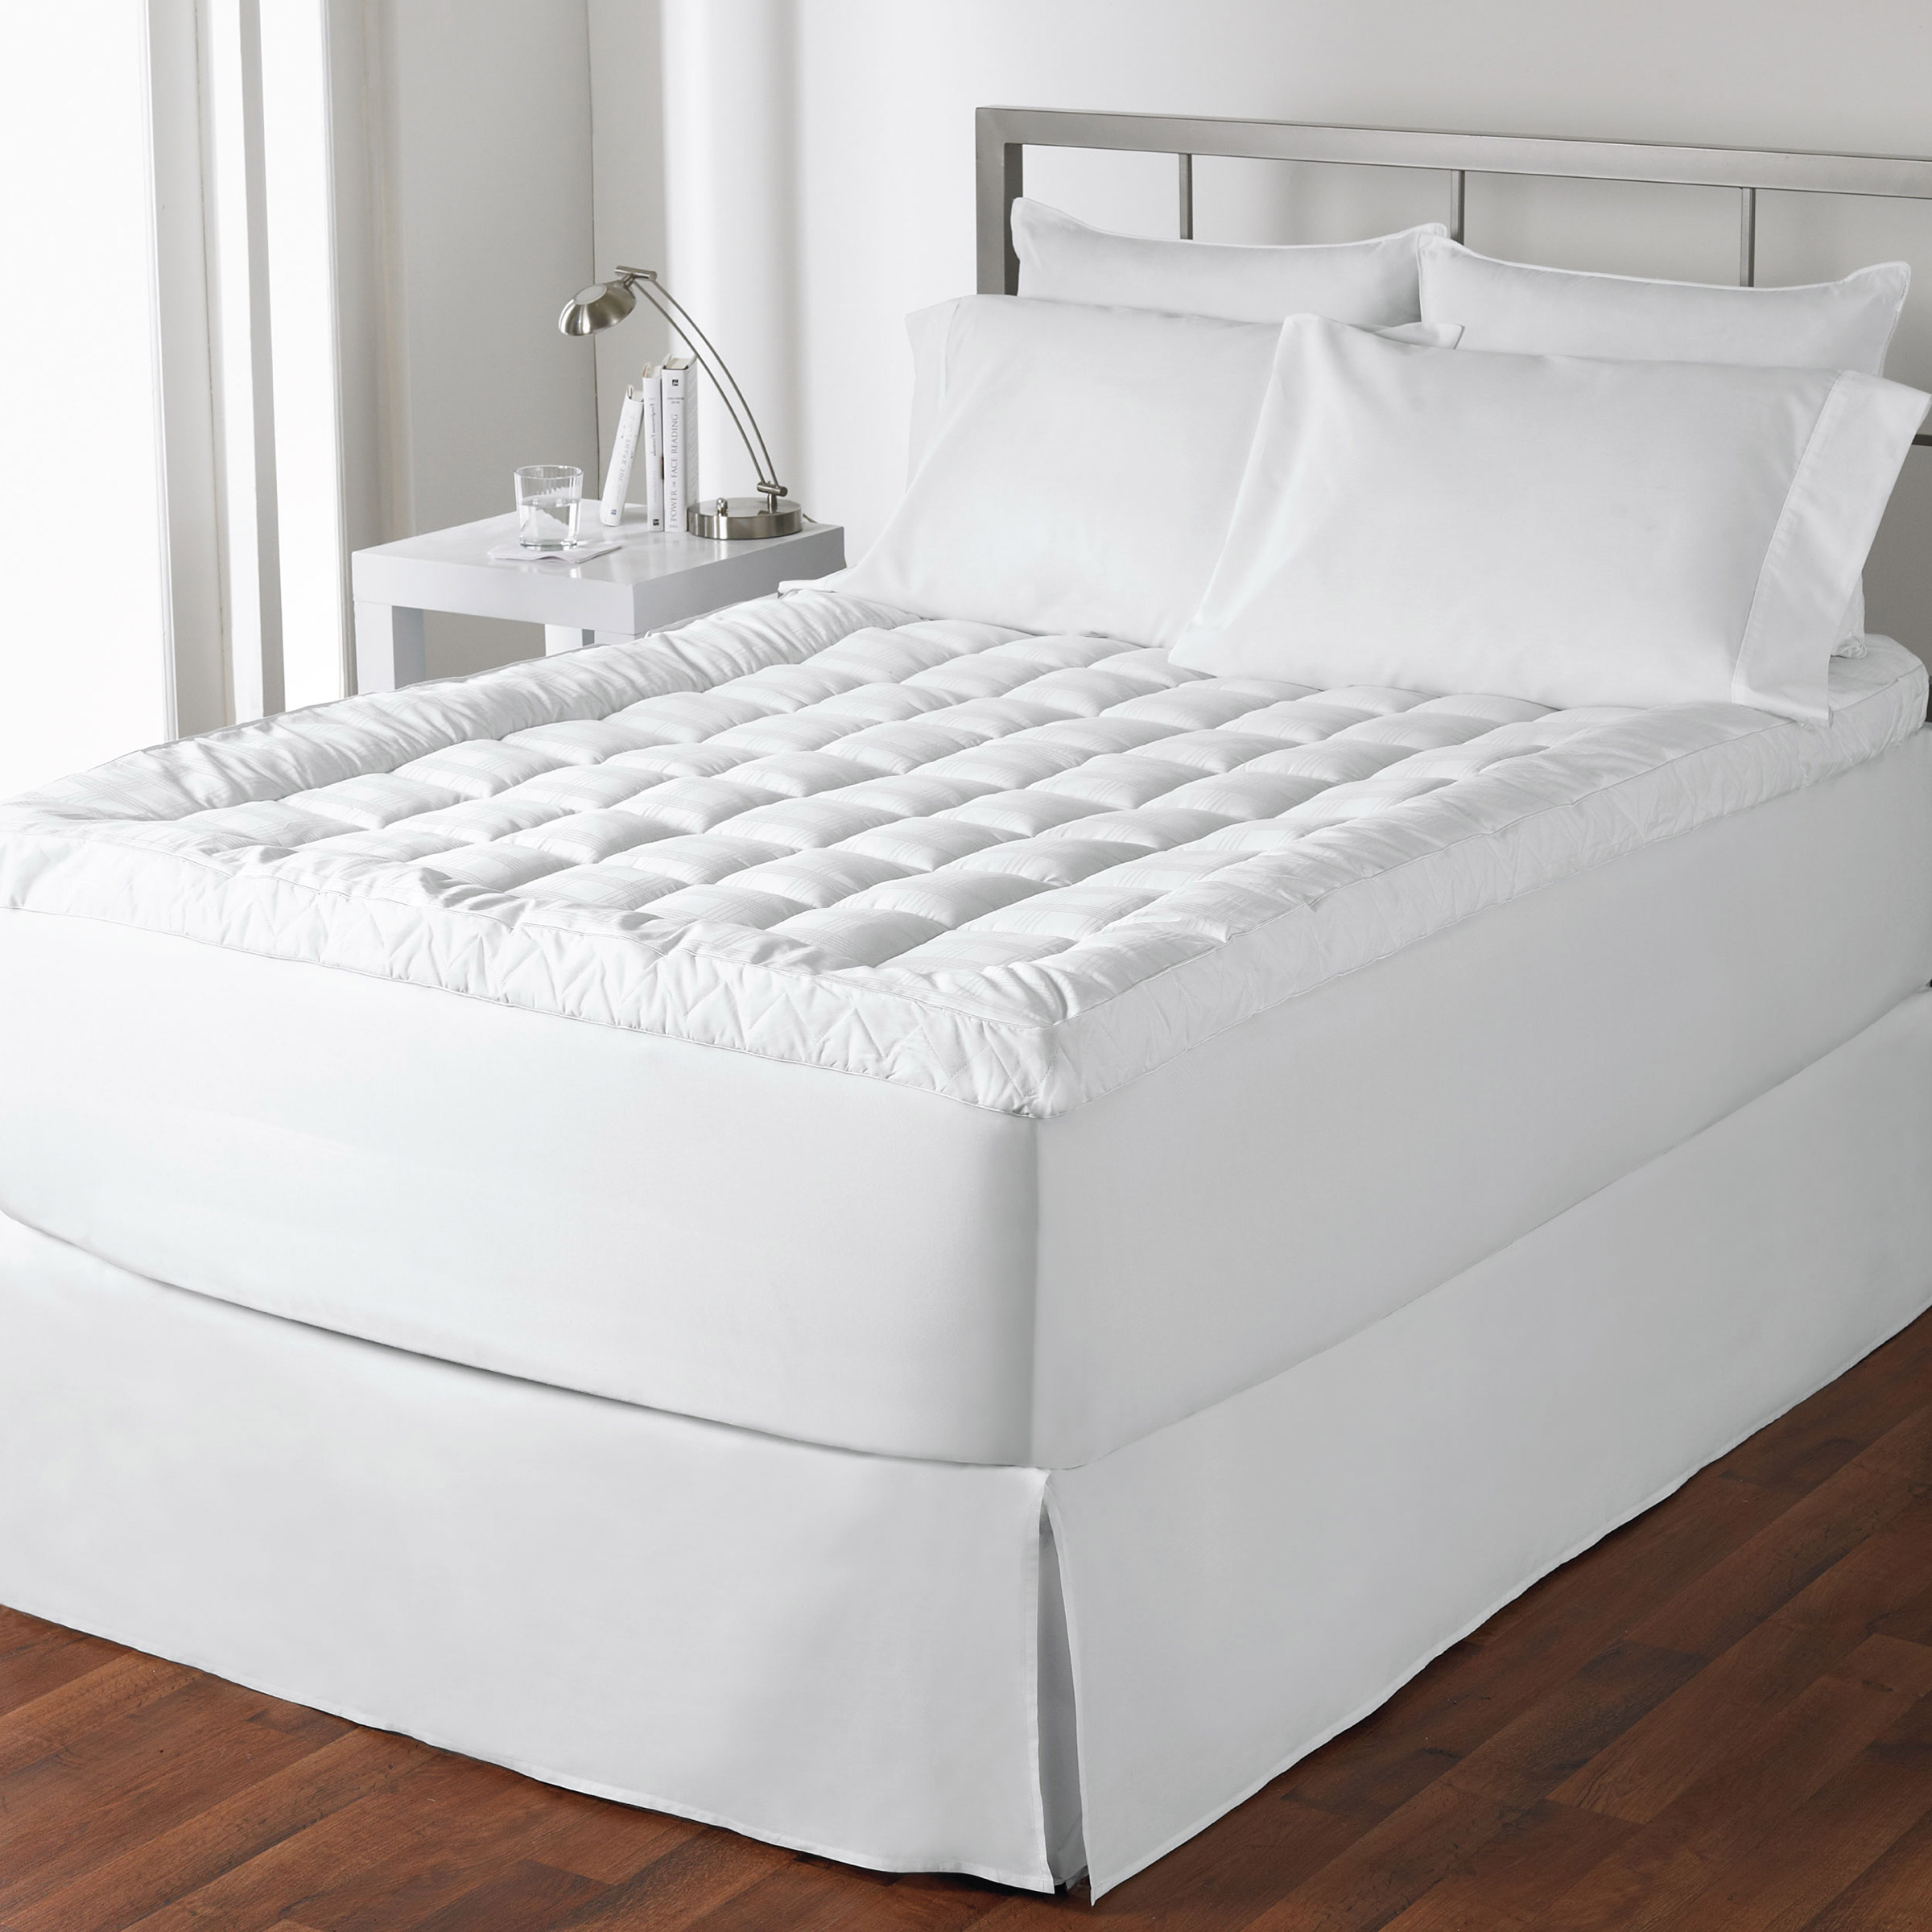 Live comfortably cuddlebed mattress topper twin ebay for Save big mattress bedrooms smyrna ga